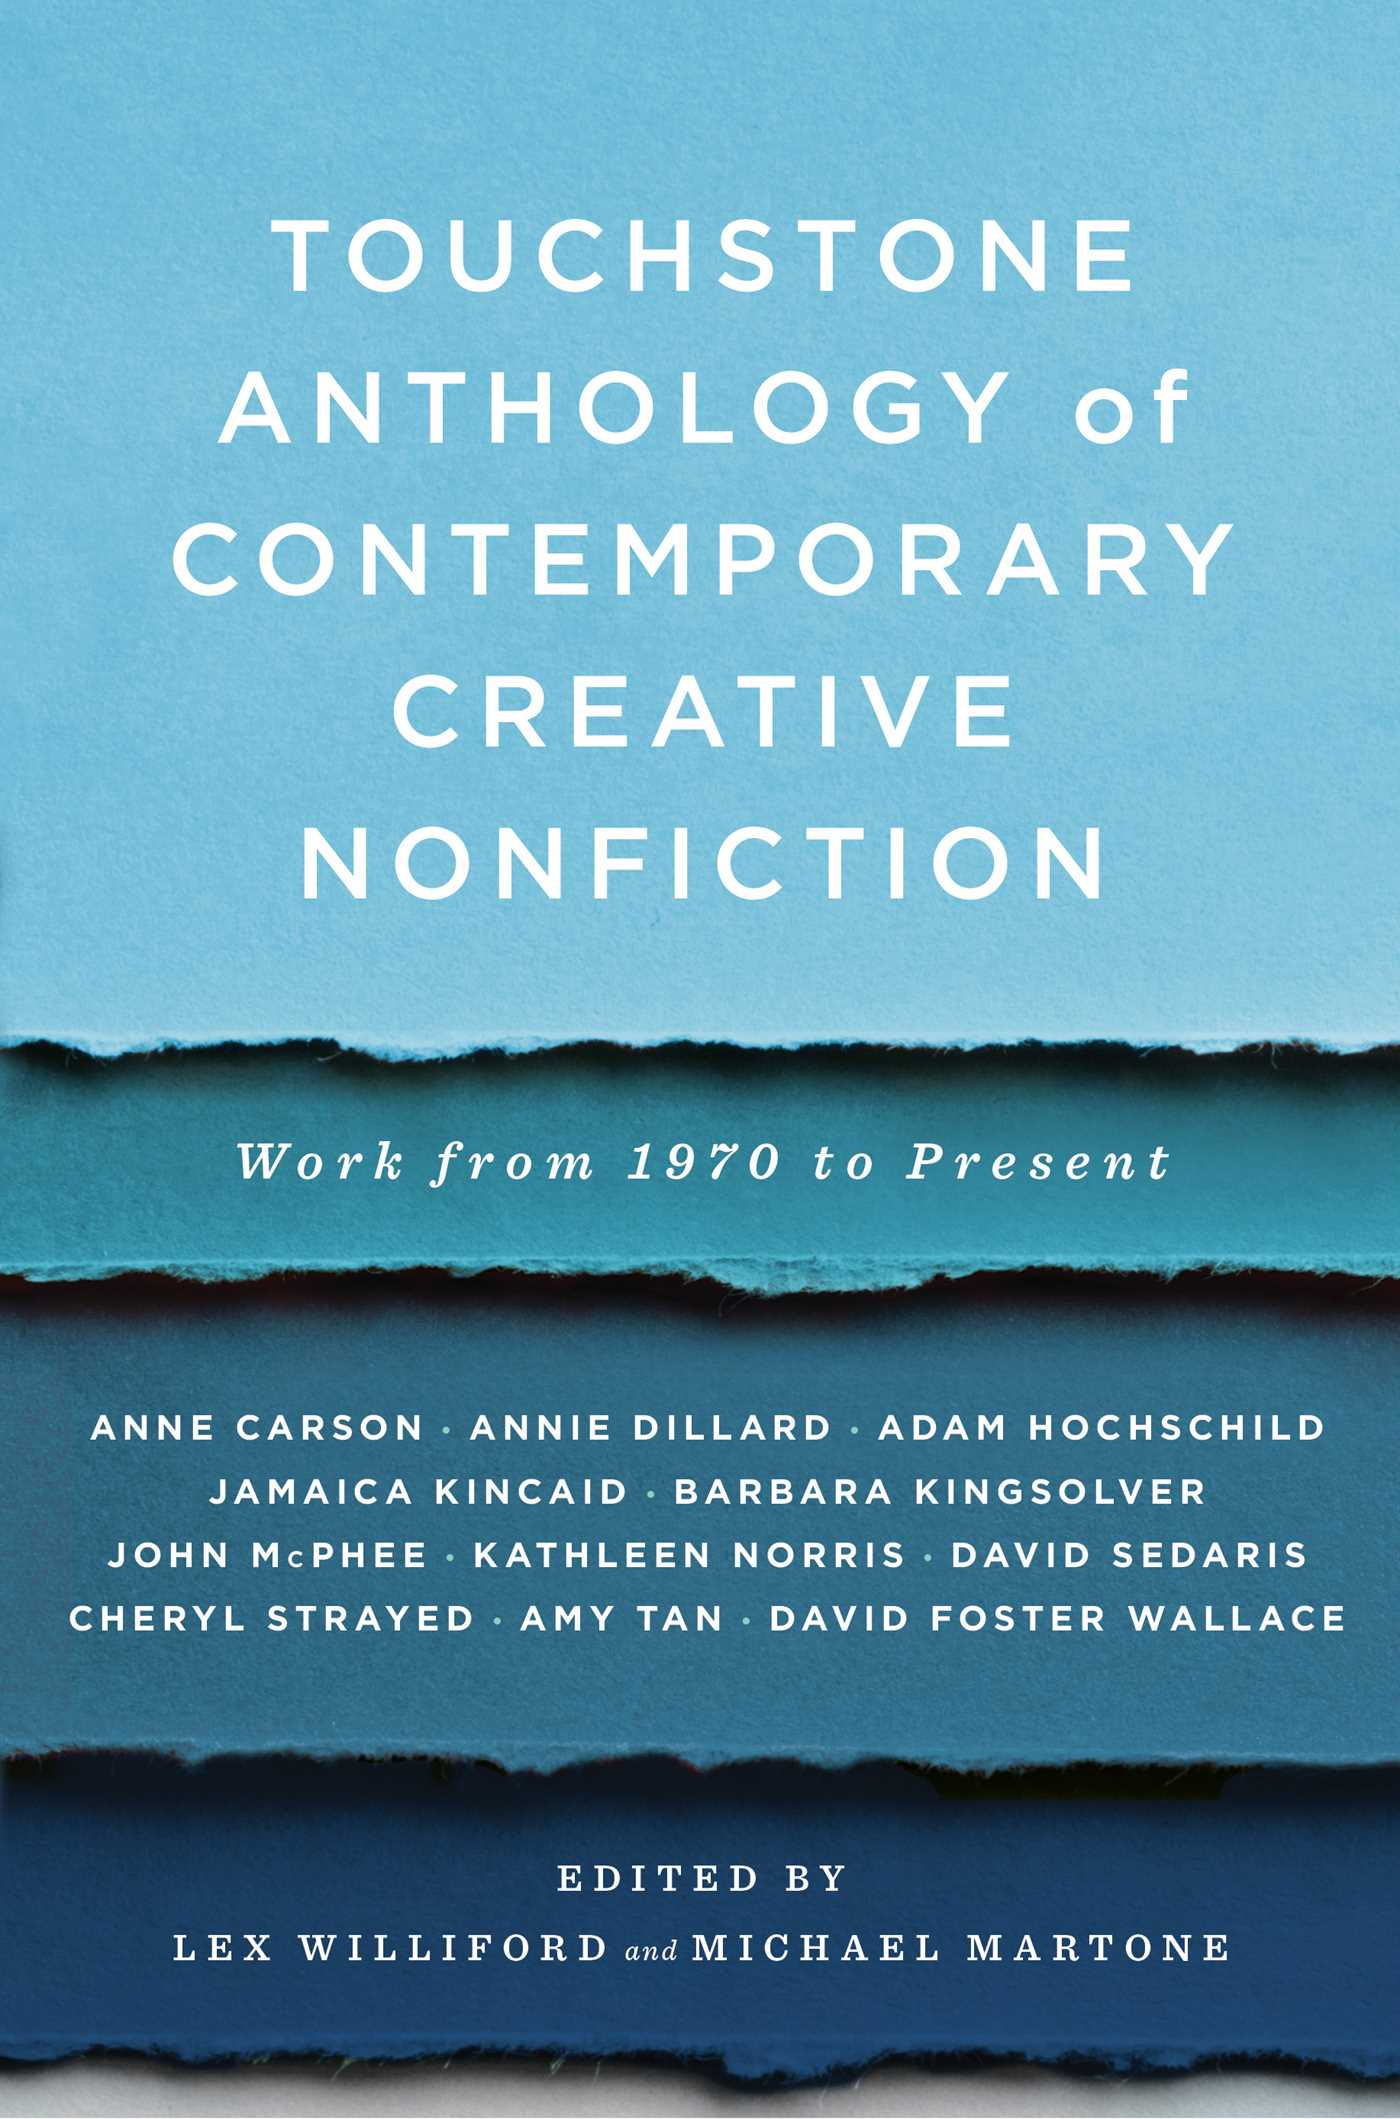 Touchstone-anthology-of-contemporary-creative-9781416531746_hr